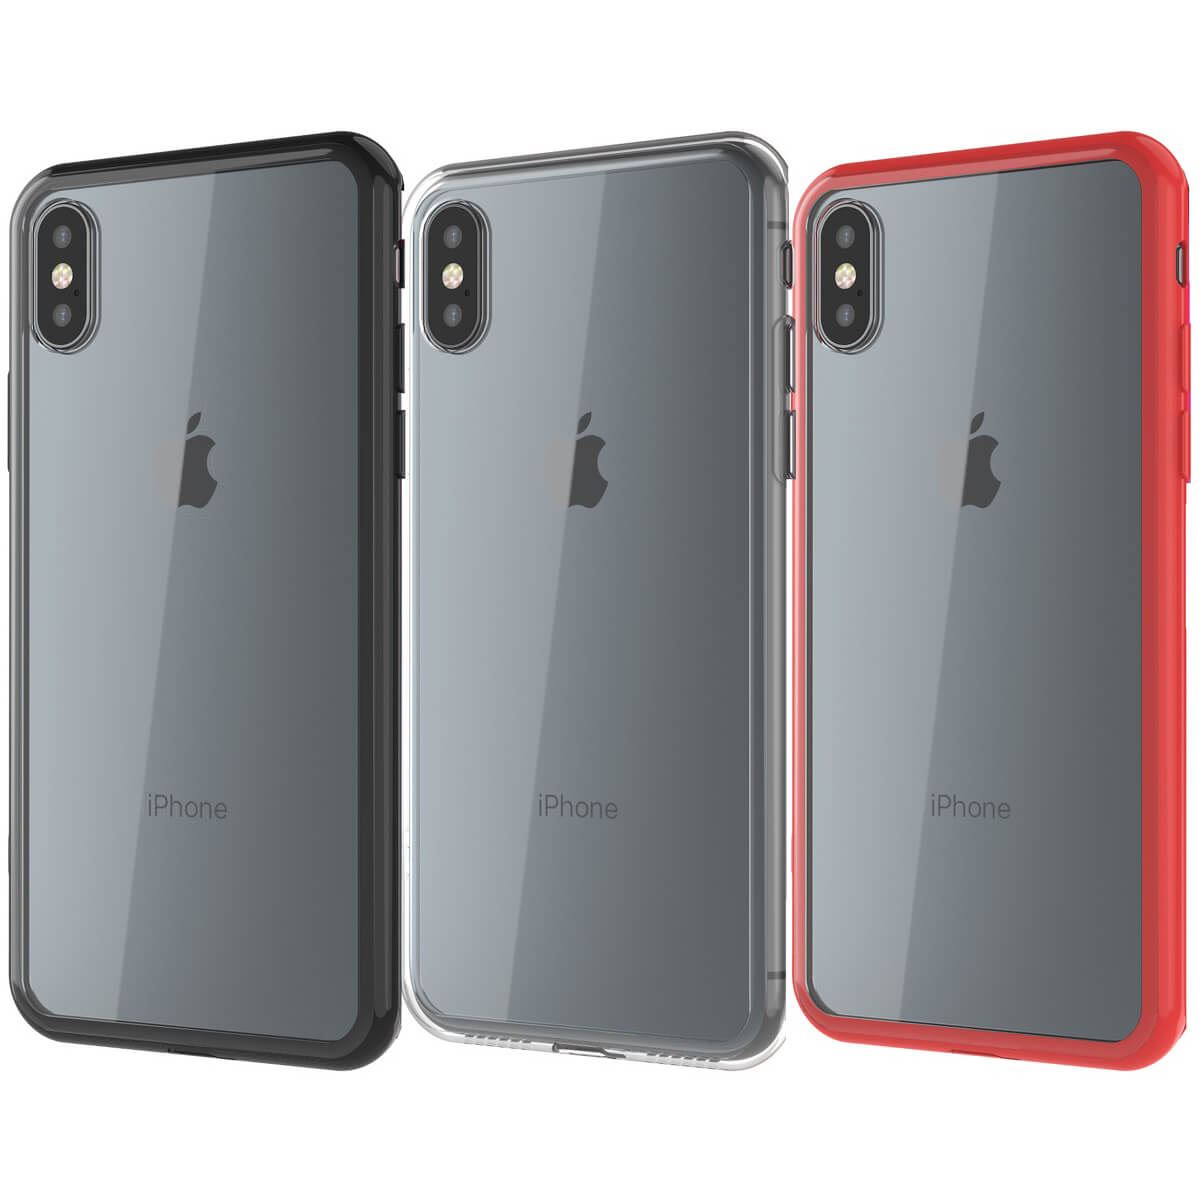 Shockproof-Case-For-Apple-iPhone-X-8-7-Plus-6-5s-Se-Clear-Slim-Bumper-TPU-Cover thumbnail 7